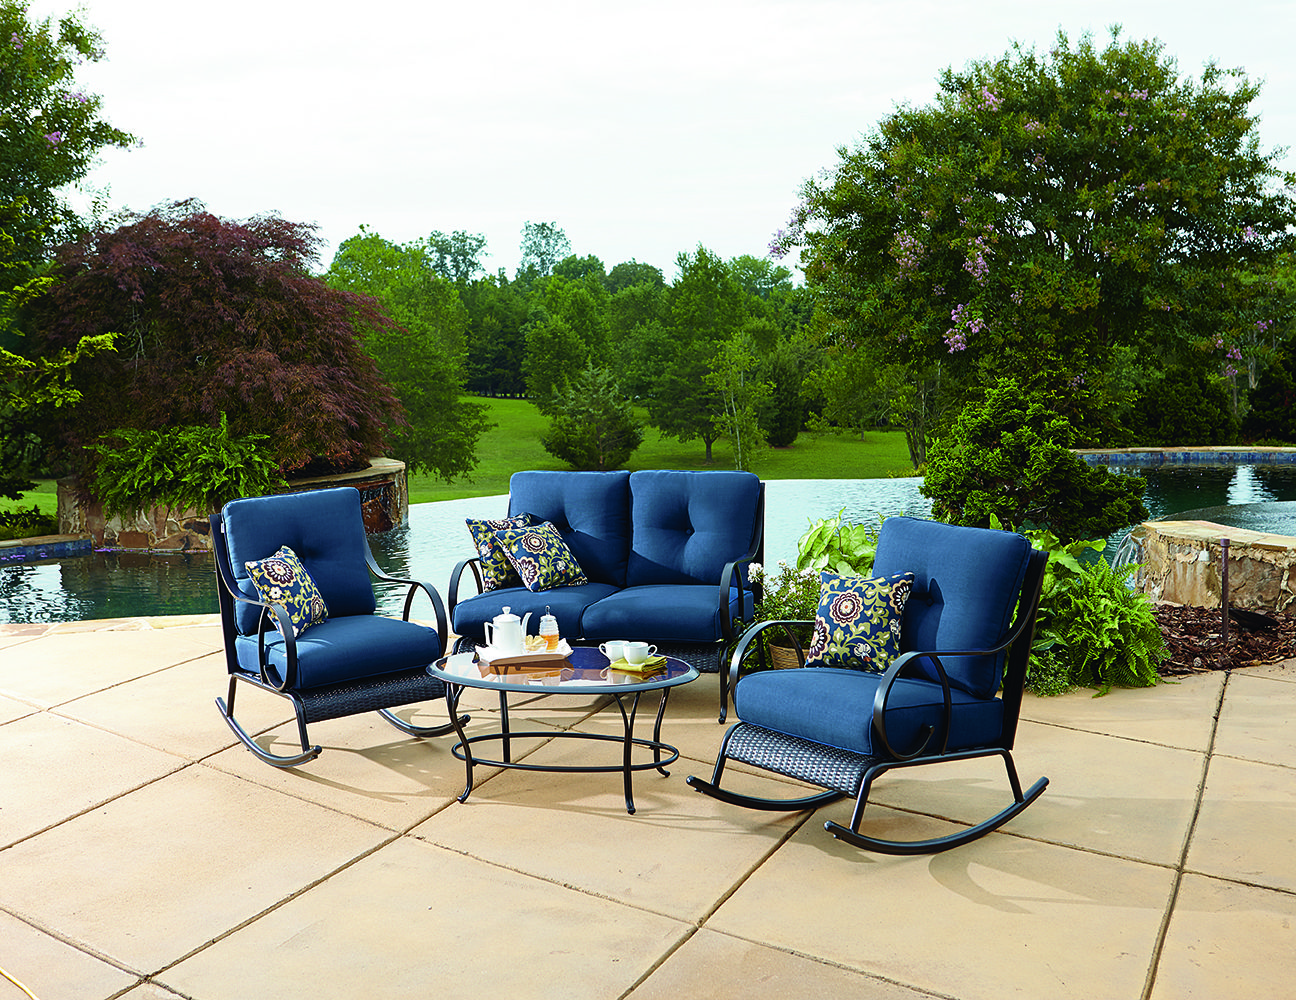 LaZBoy Outdoor Avery 4 Piece Seating (Blue) Lazy boy